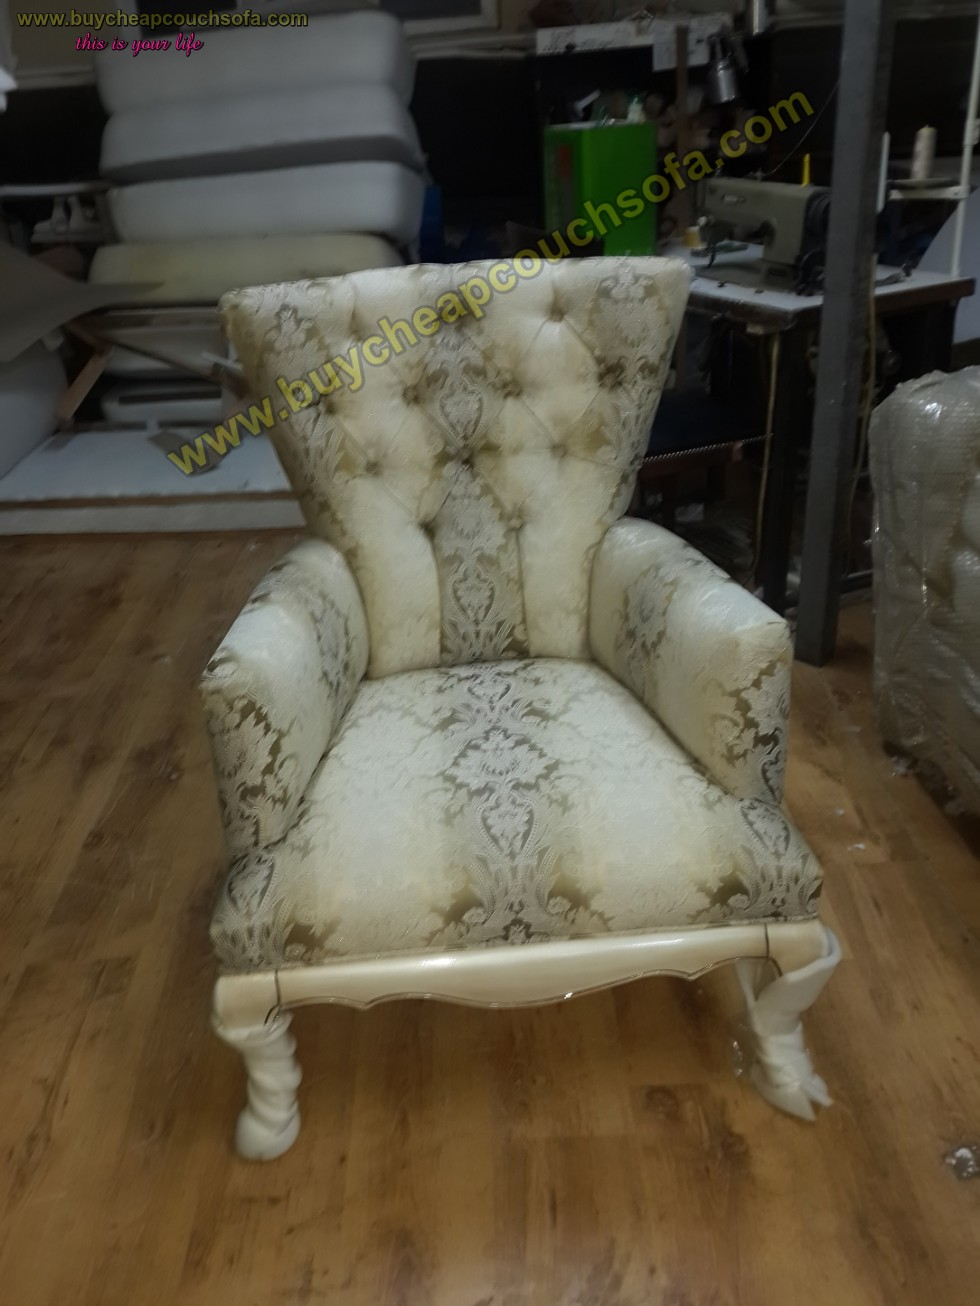 Kodu: 10226 - Luxury Wooden Armchair Carved Accent Chair